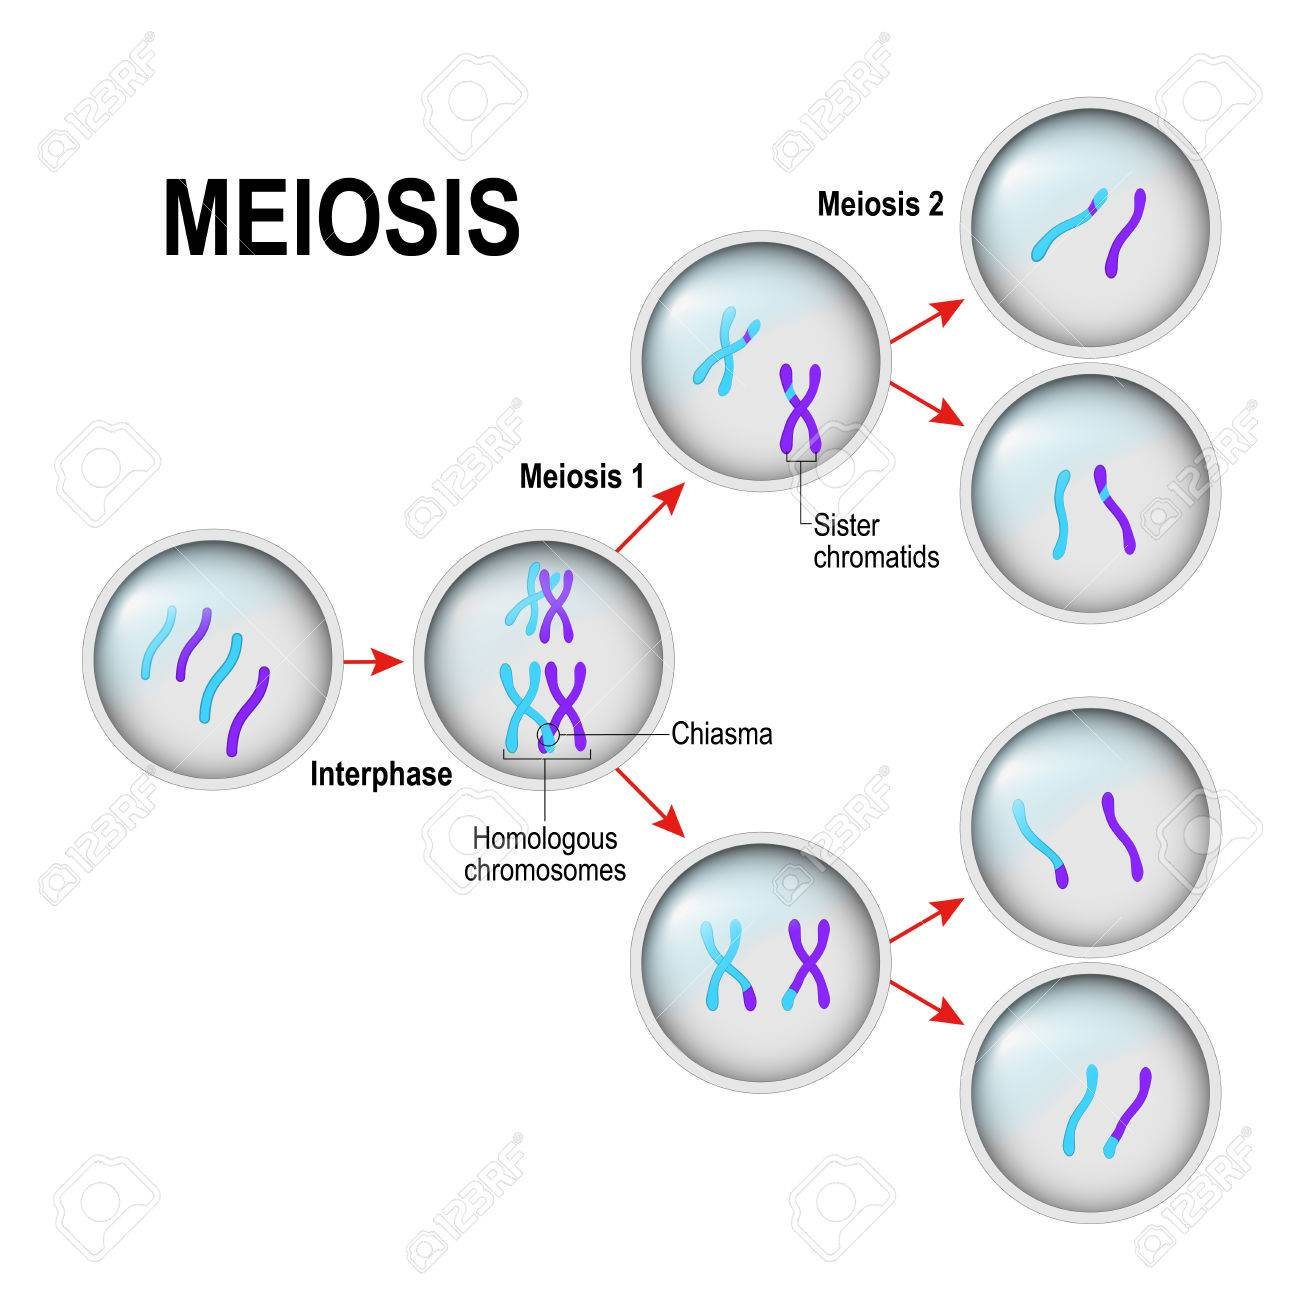 Meiosis cell division and interphase in the illustration labeled meiosis cell division and interphase in the illustration labeled chiasma sister chromatids and pooptronica